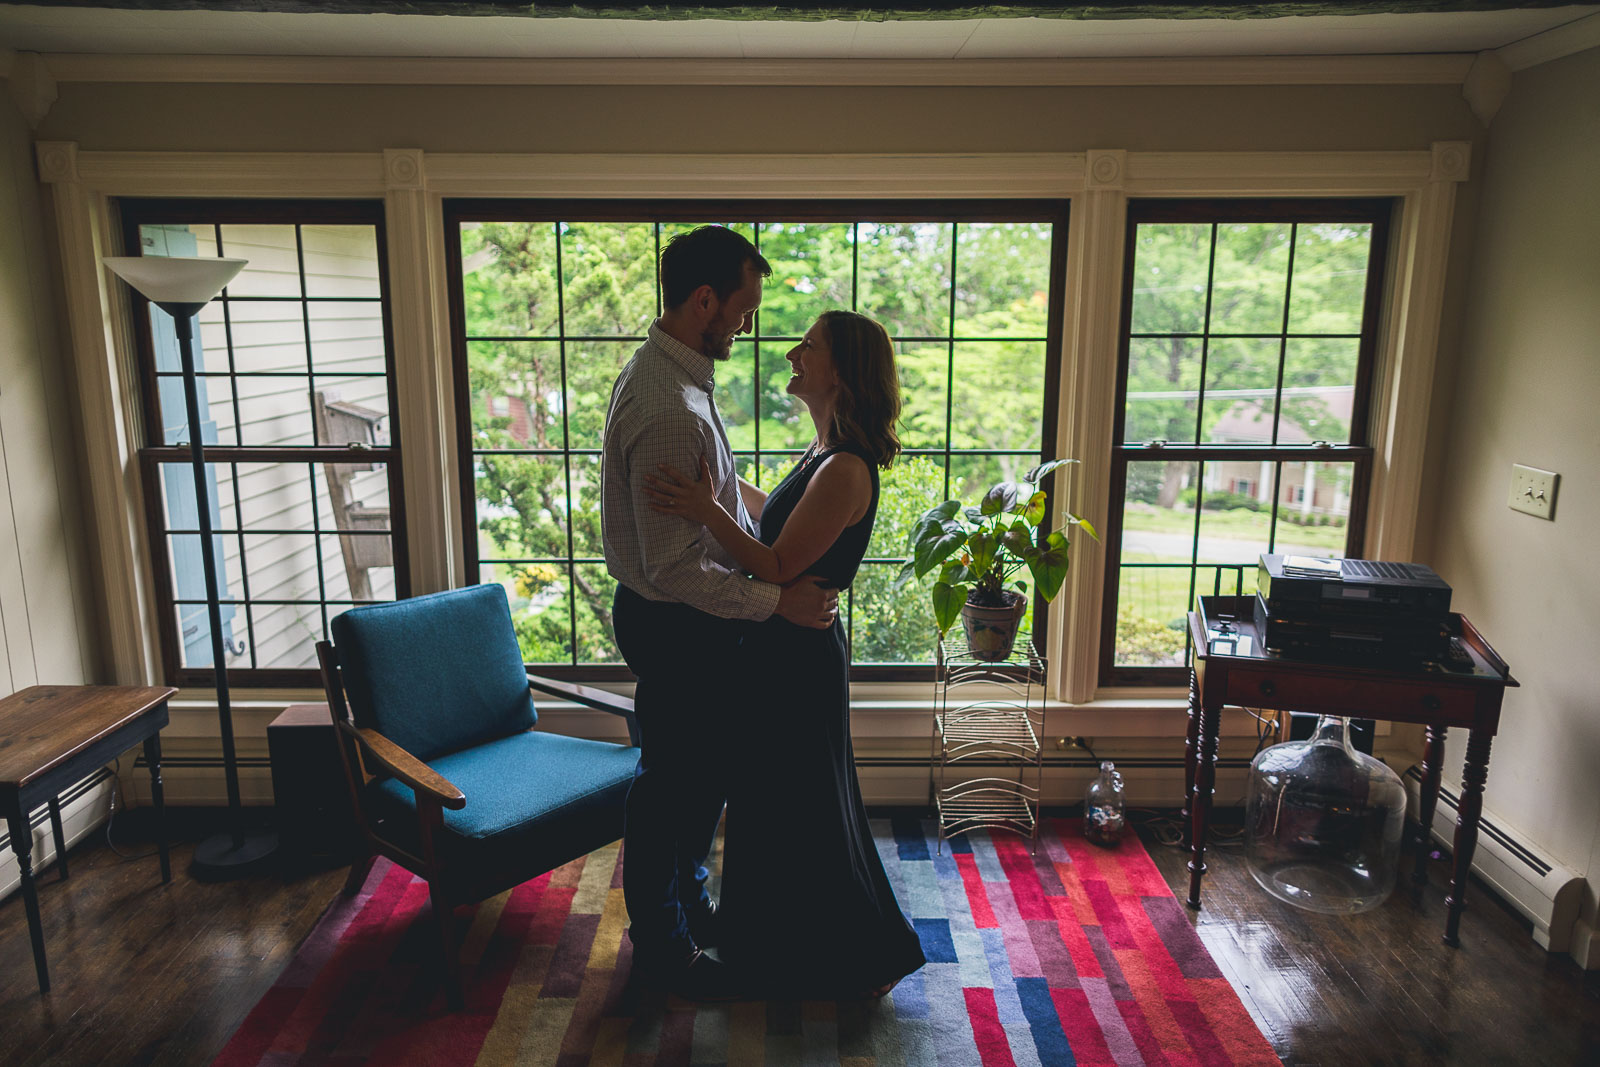 Morristown Engagement Photography at Home